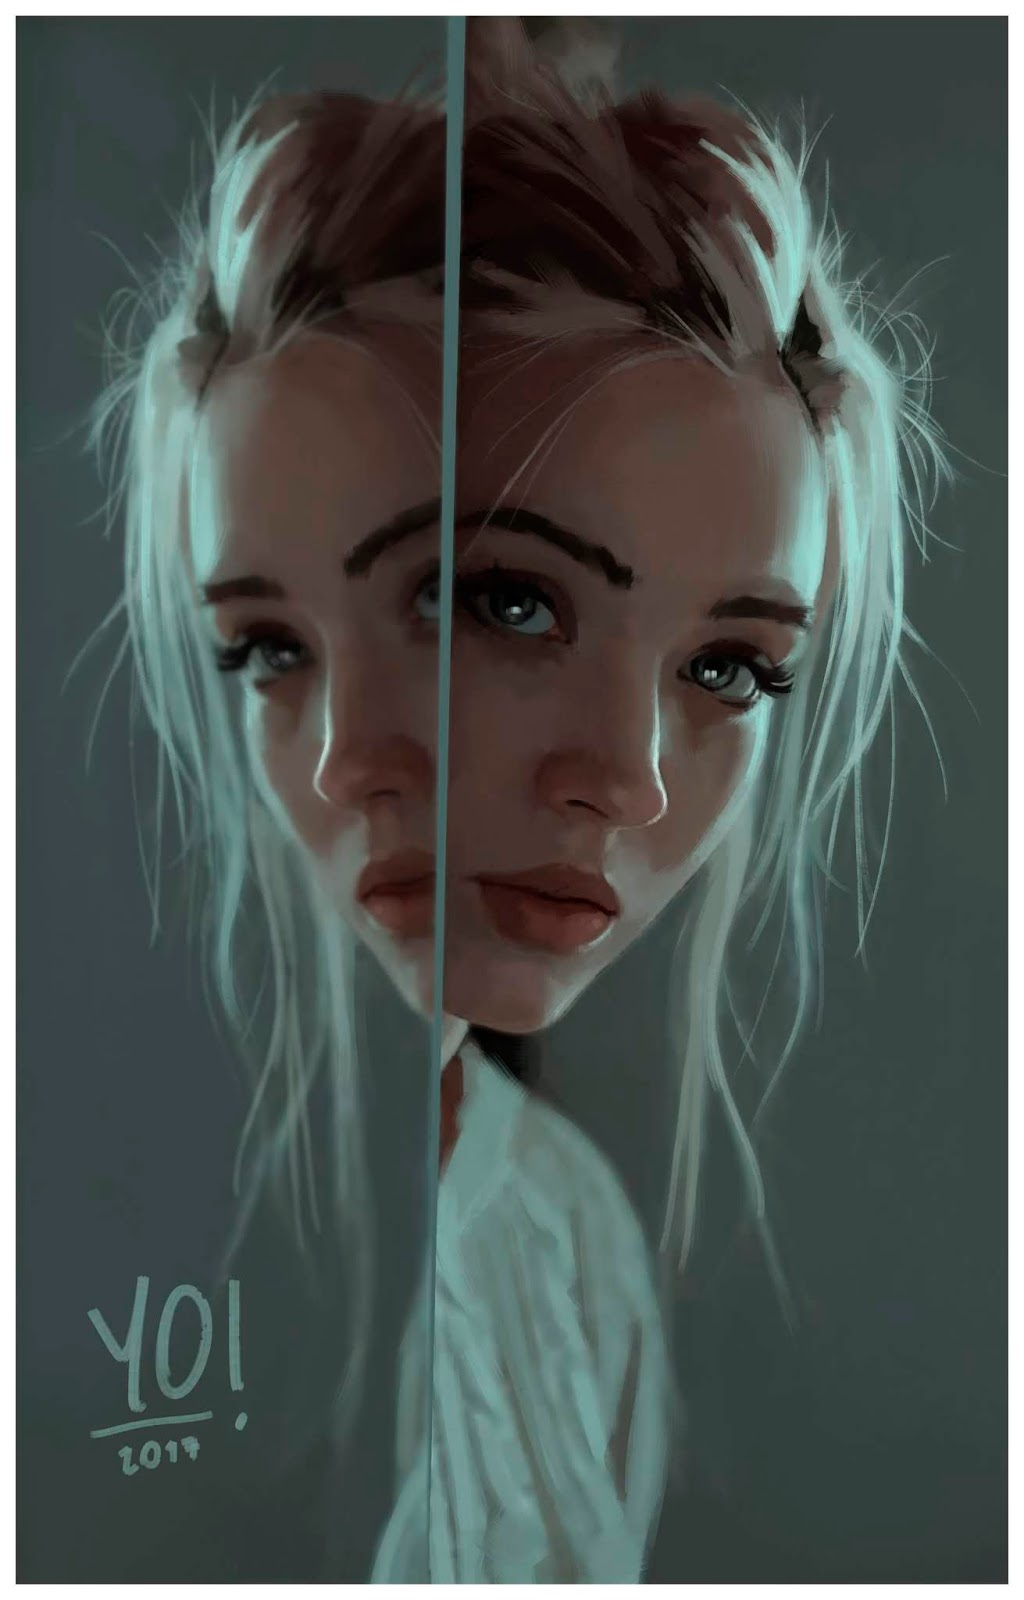 Digital Art by Onur Yürek